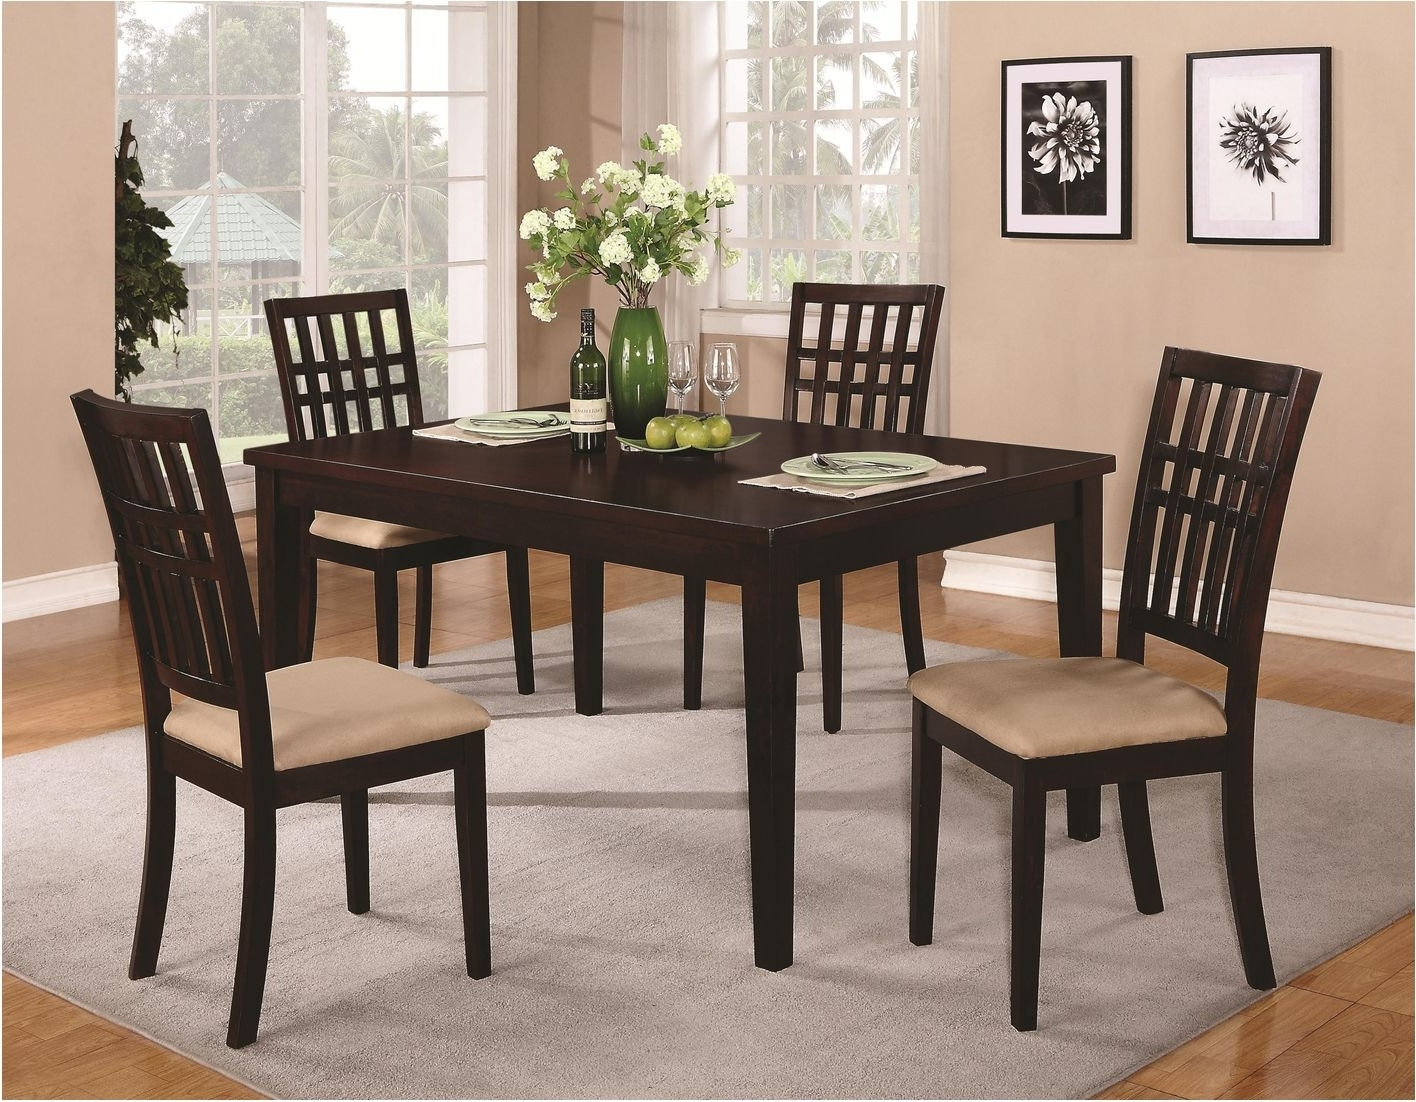 Sensational Large Square Dark Wood Dining Table Glass Legs 6 8 For Latest Dark Wood Dining Tables 6 Chairs (View 25 of 25)